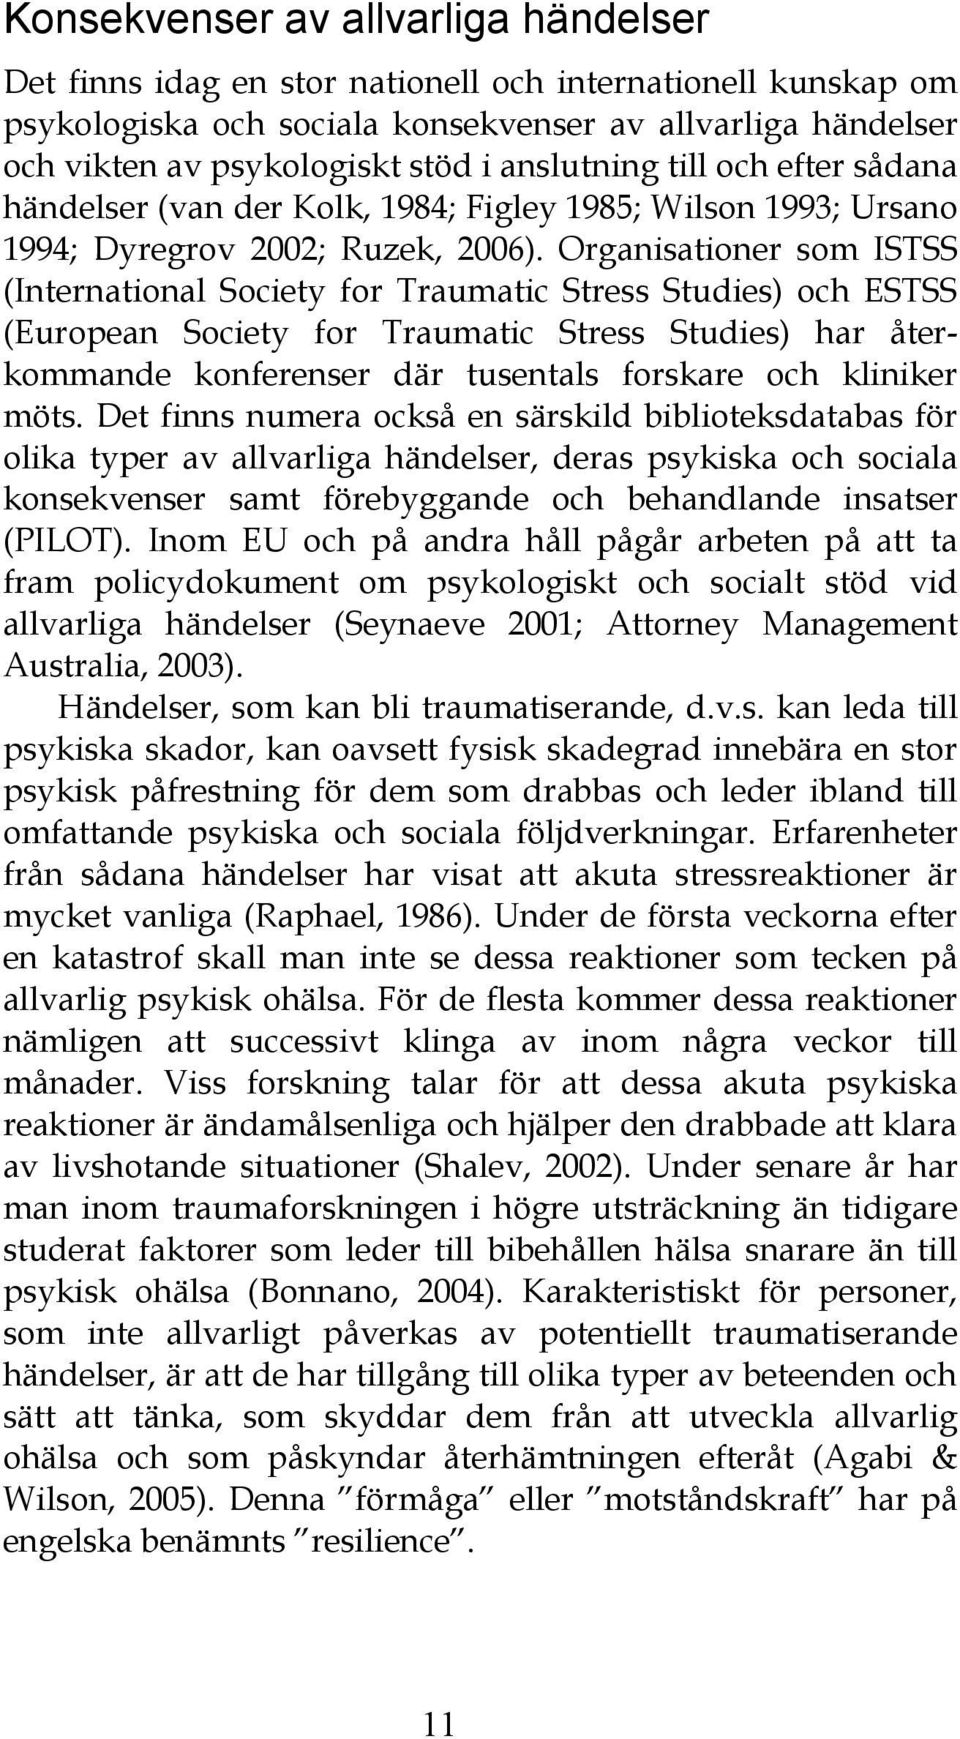 Organisationer som ISTSS (International Society for Traumatic Stress Studies) och ESTSS (European Society for Traumatic Stress Studies) har återkommande konferenser där tusentals forskare och